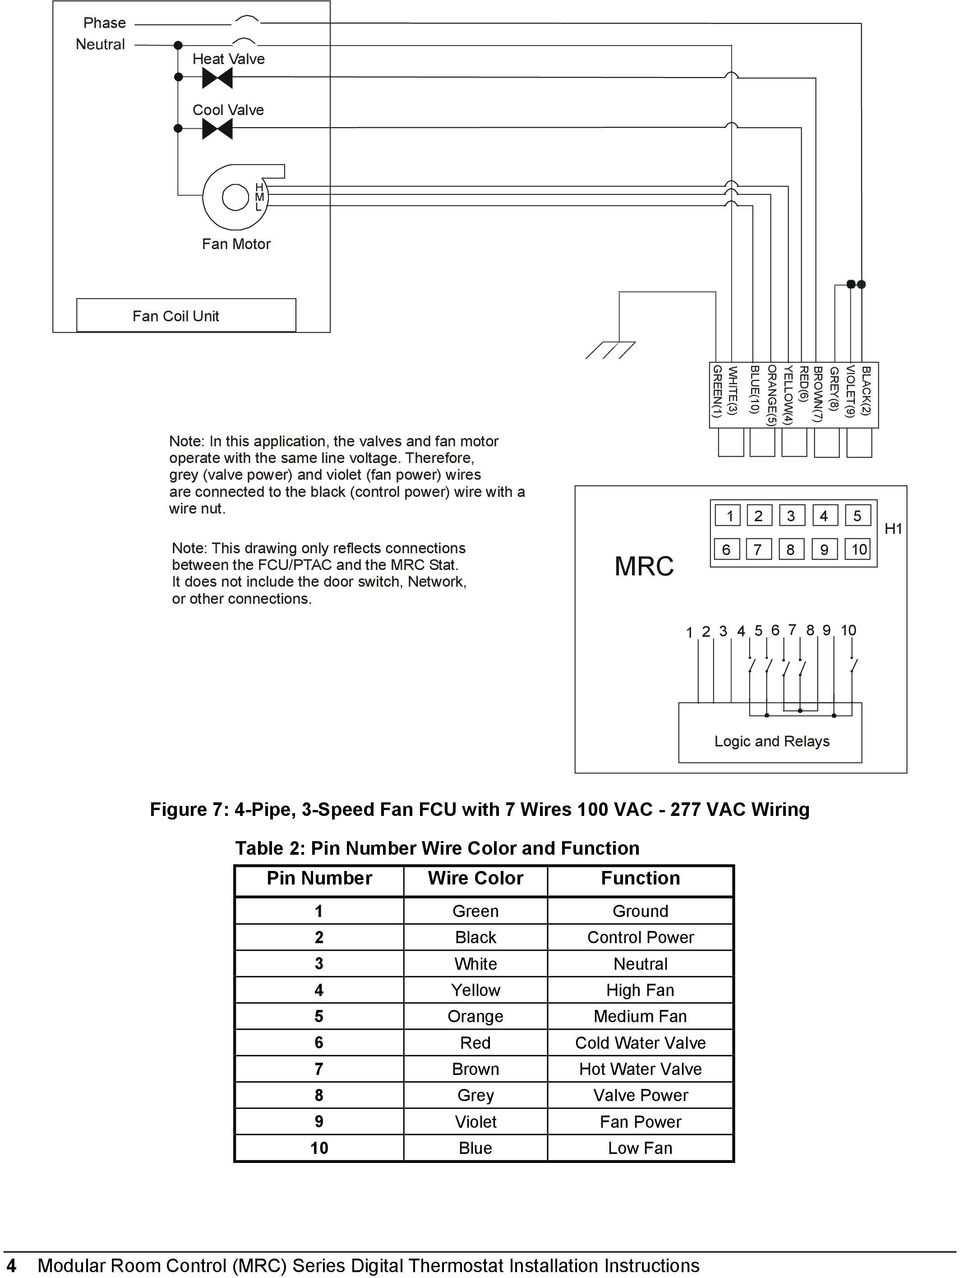 Modular Room Control Mrc Series Digital Thermostat Pdf 2 Switch 8 Valve Wiring Diagram Note This Drawing Only Reflects Connections Between The Fcu Ptac And Stat